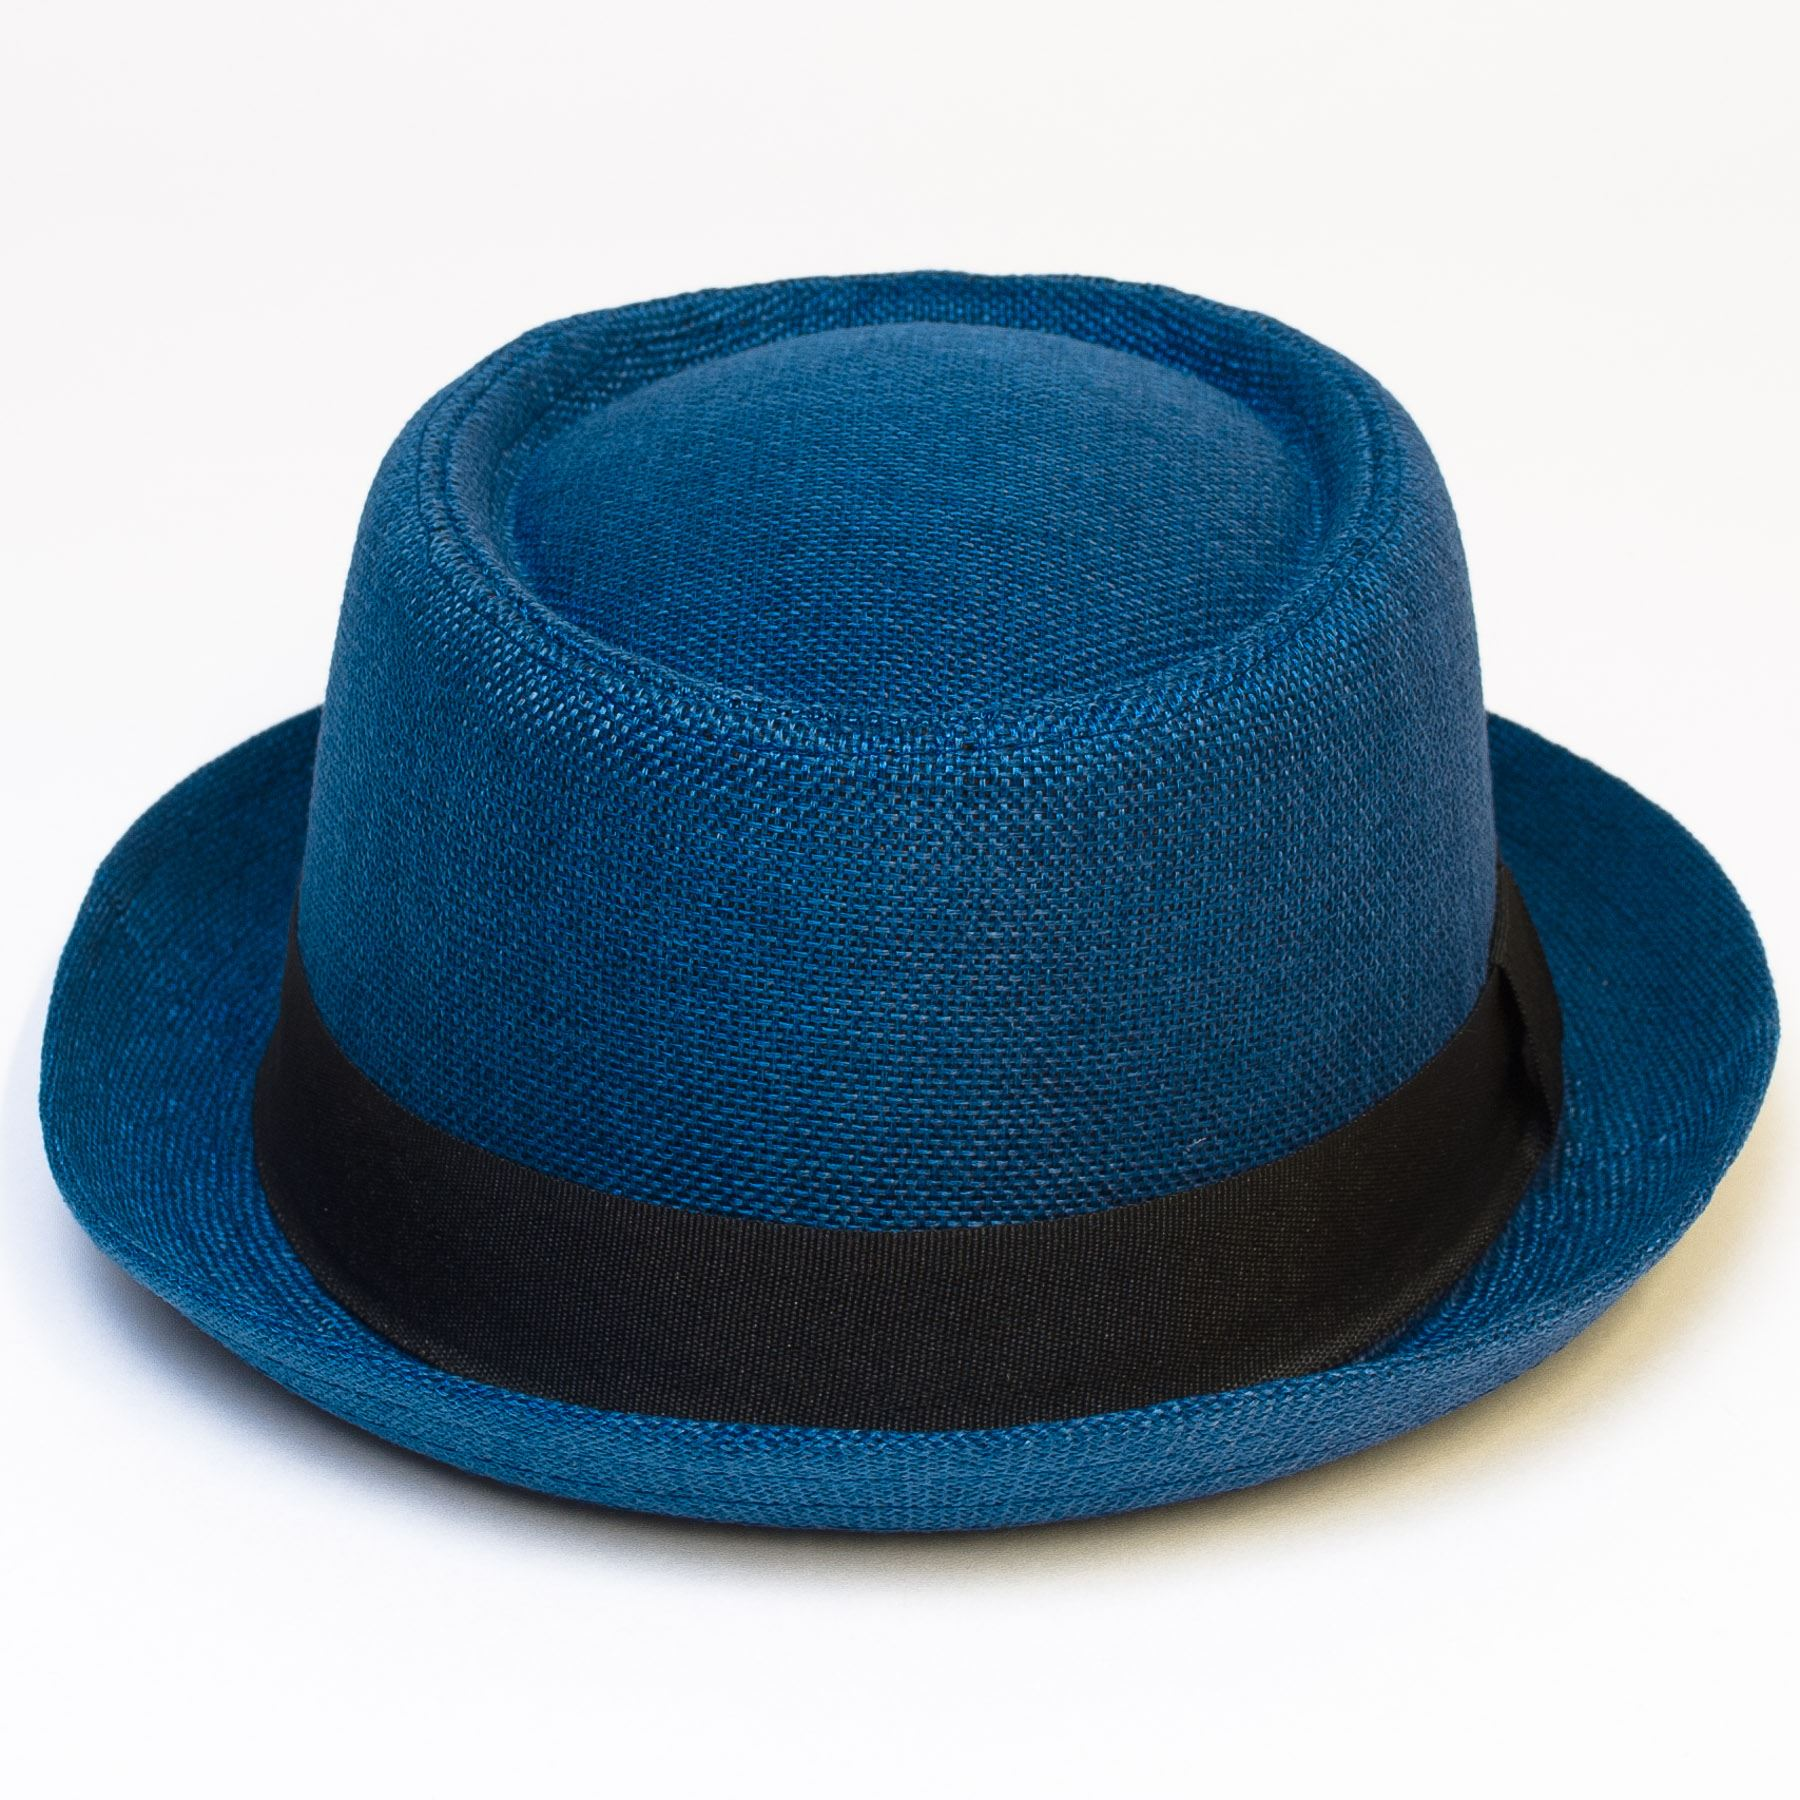 Pork-Pie-Hat-with-Black-Grosgrain-Band thumbnail 12